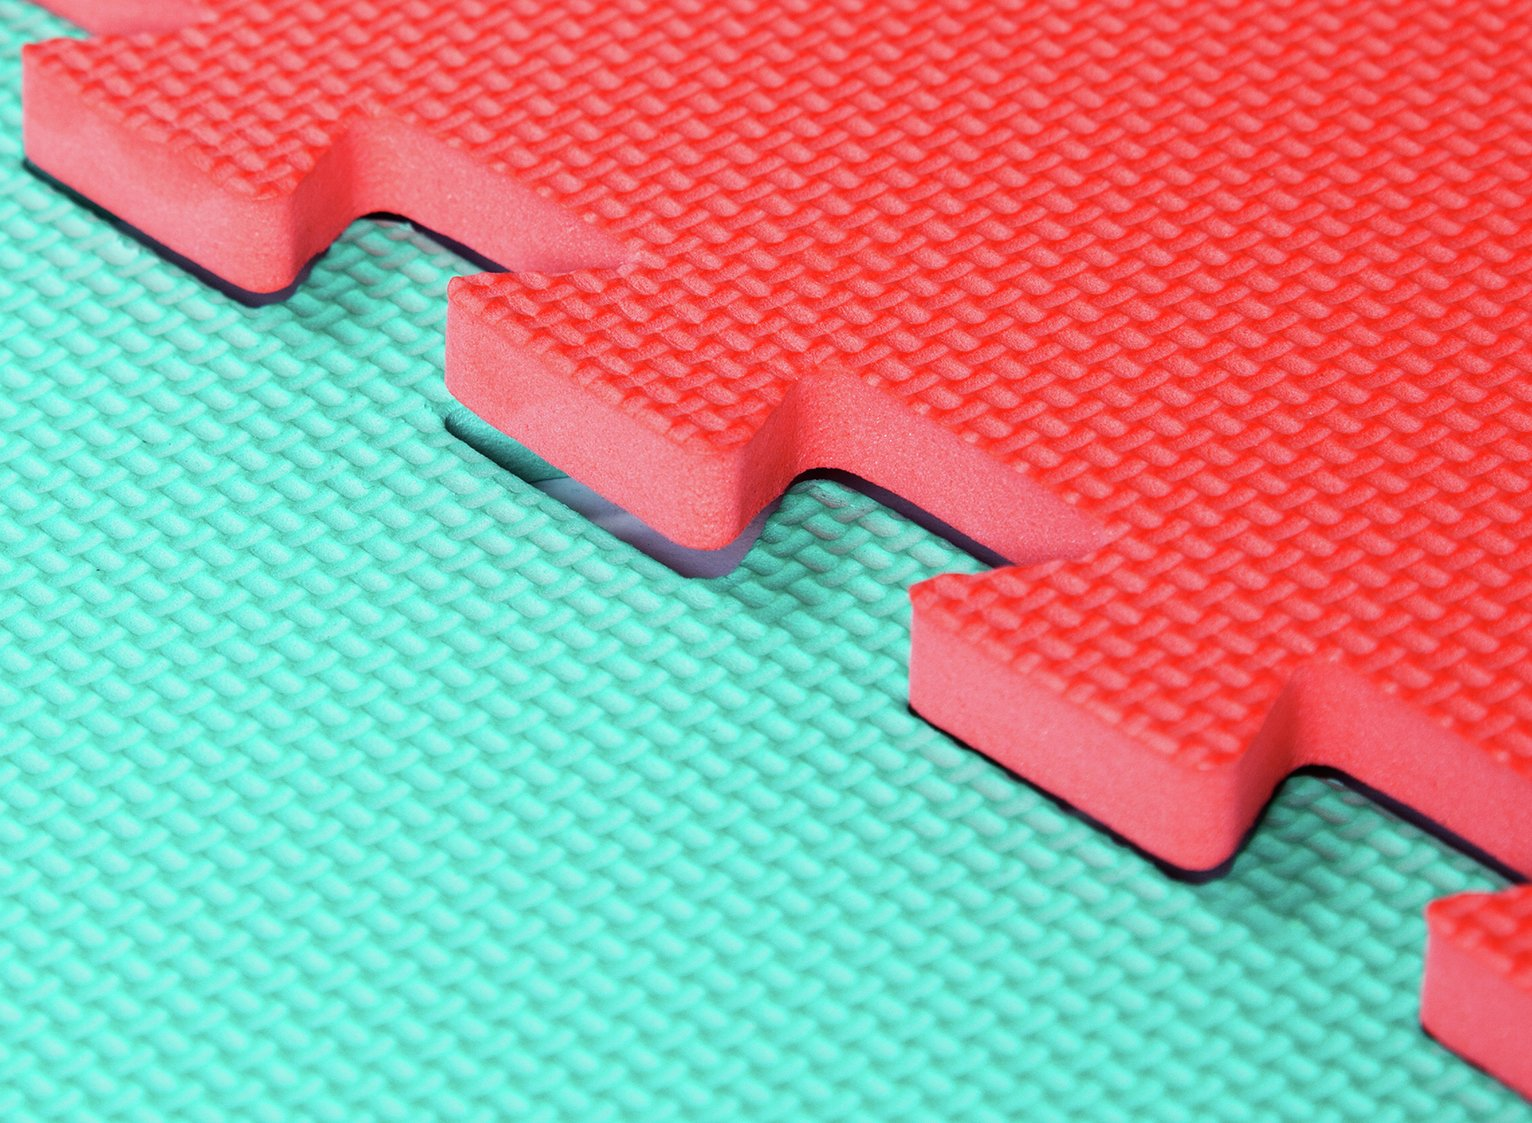 chad valley foam protector tumbler mats